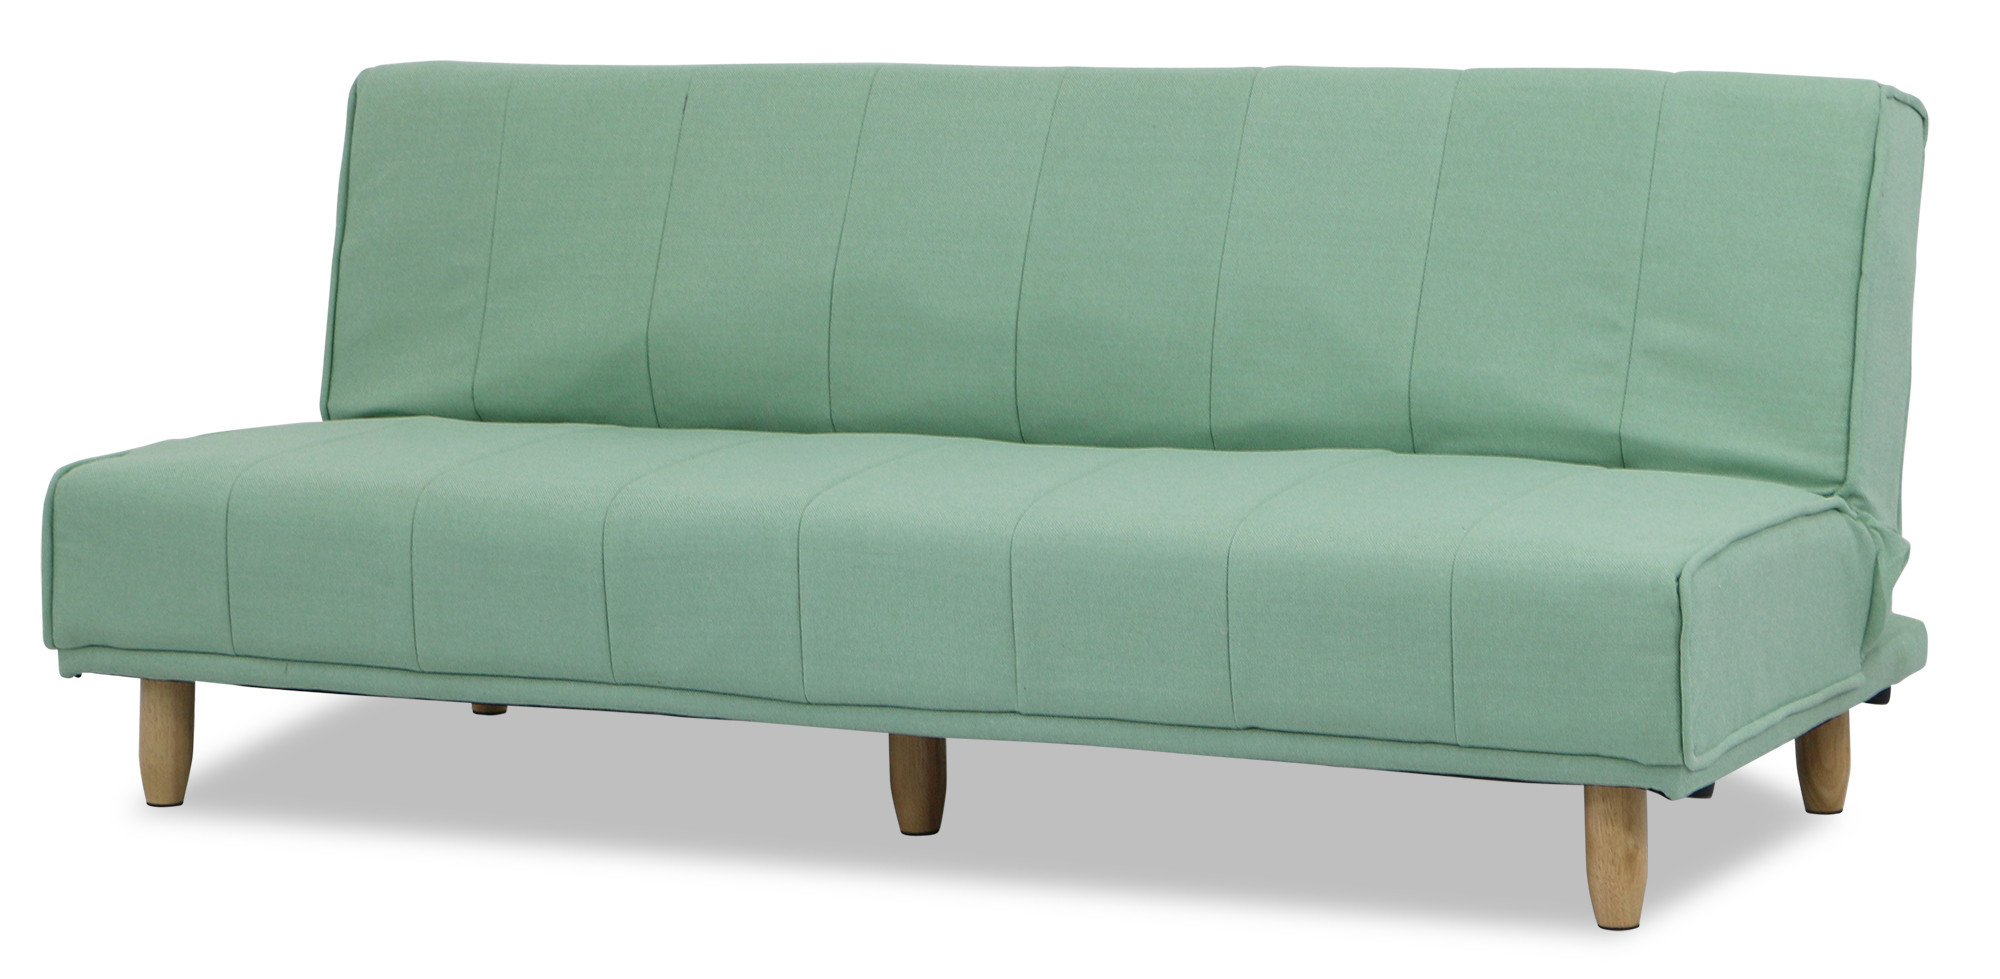 Mint Green Sofa Bed Choosing The Right Green Sofa For Your